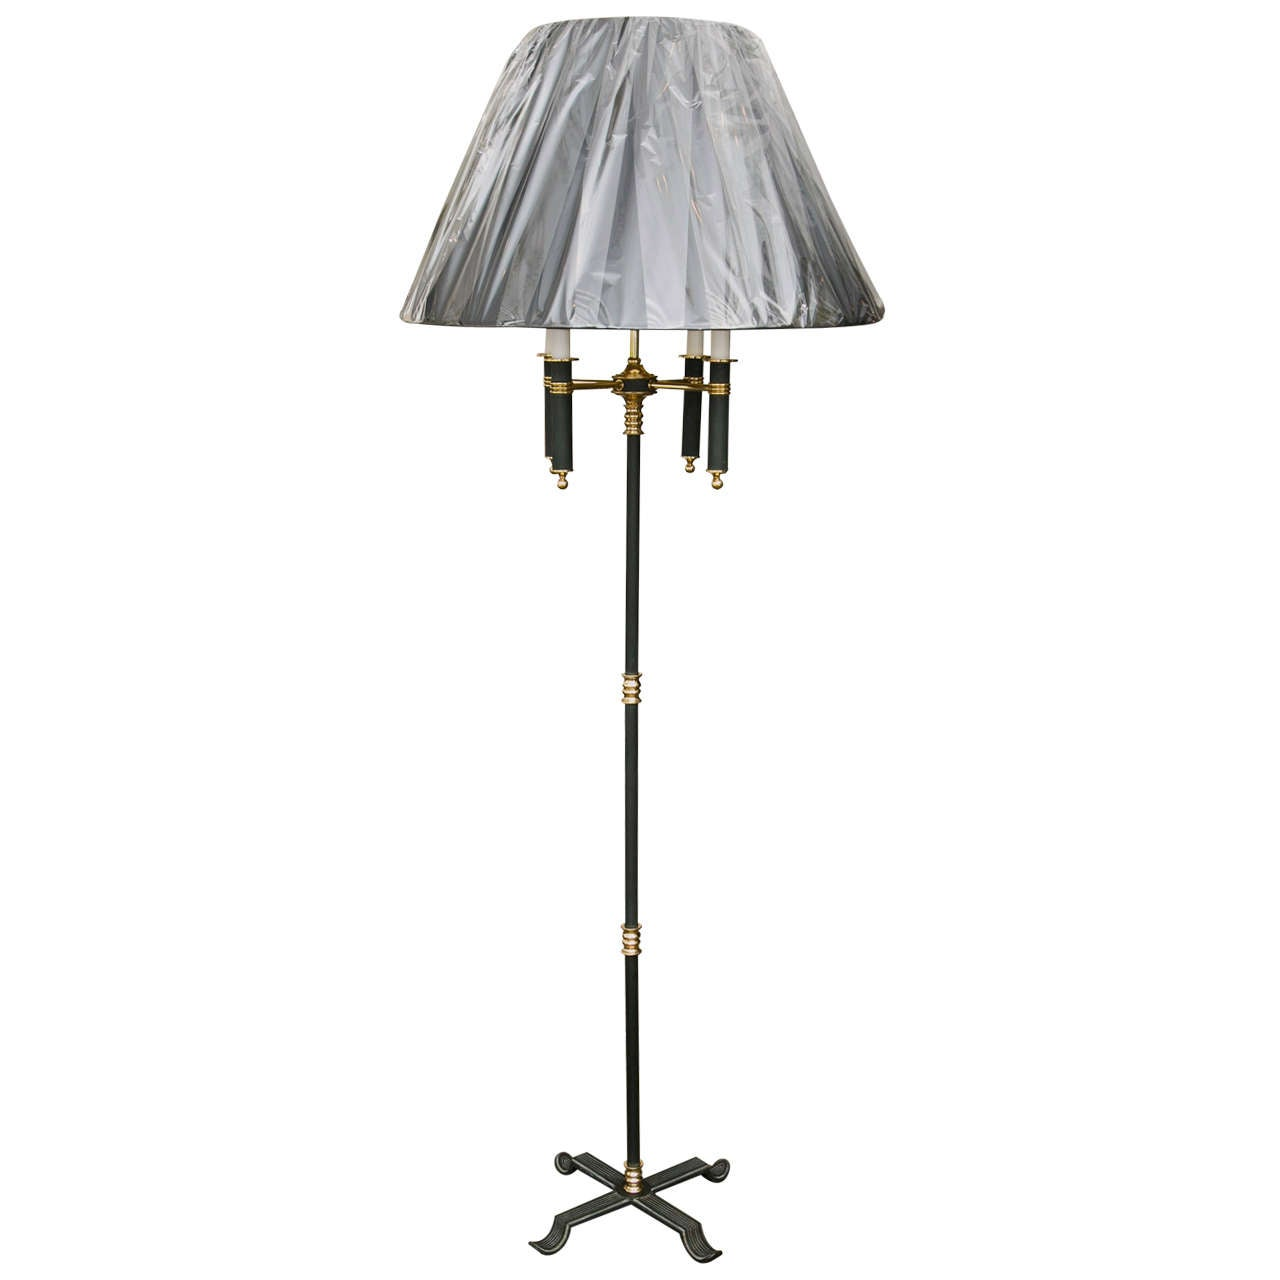 Brass & Painted Directoire Floor Lamp